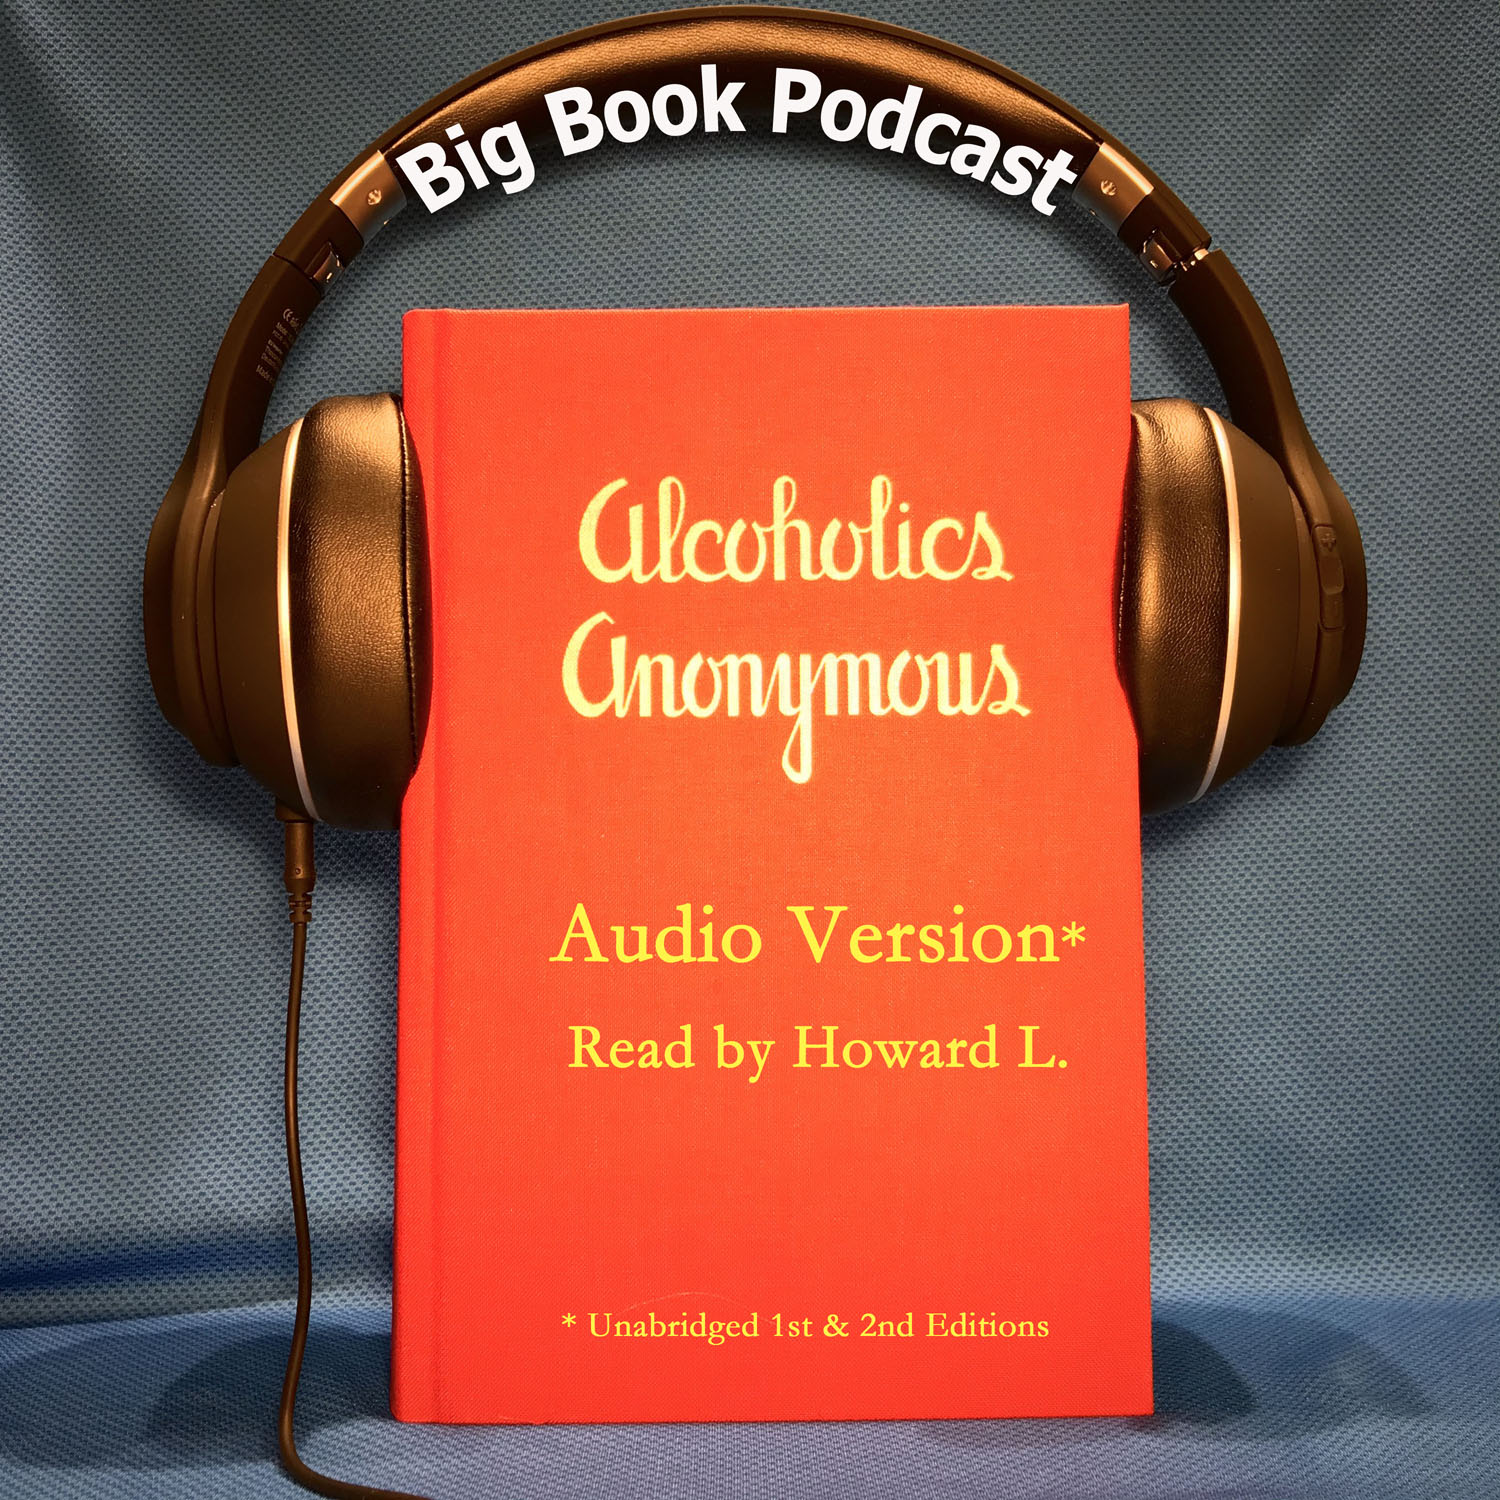 Big Book Podcast